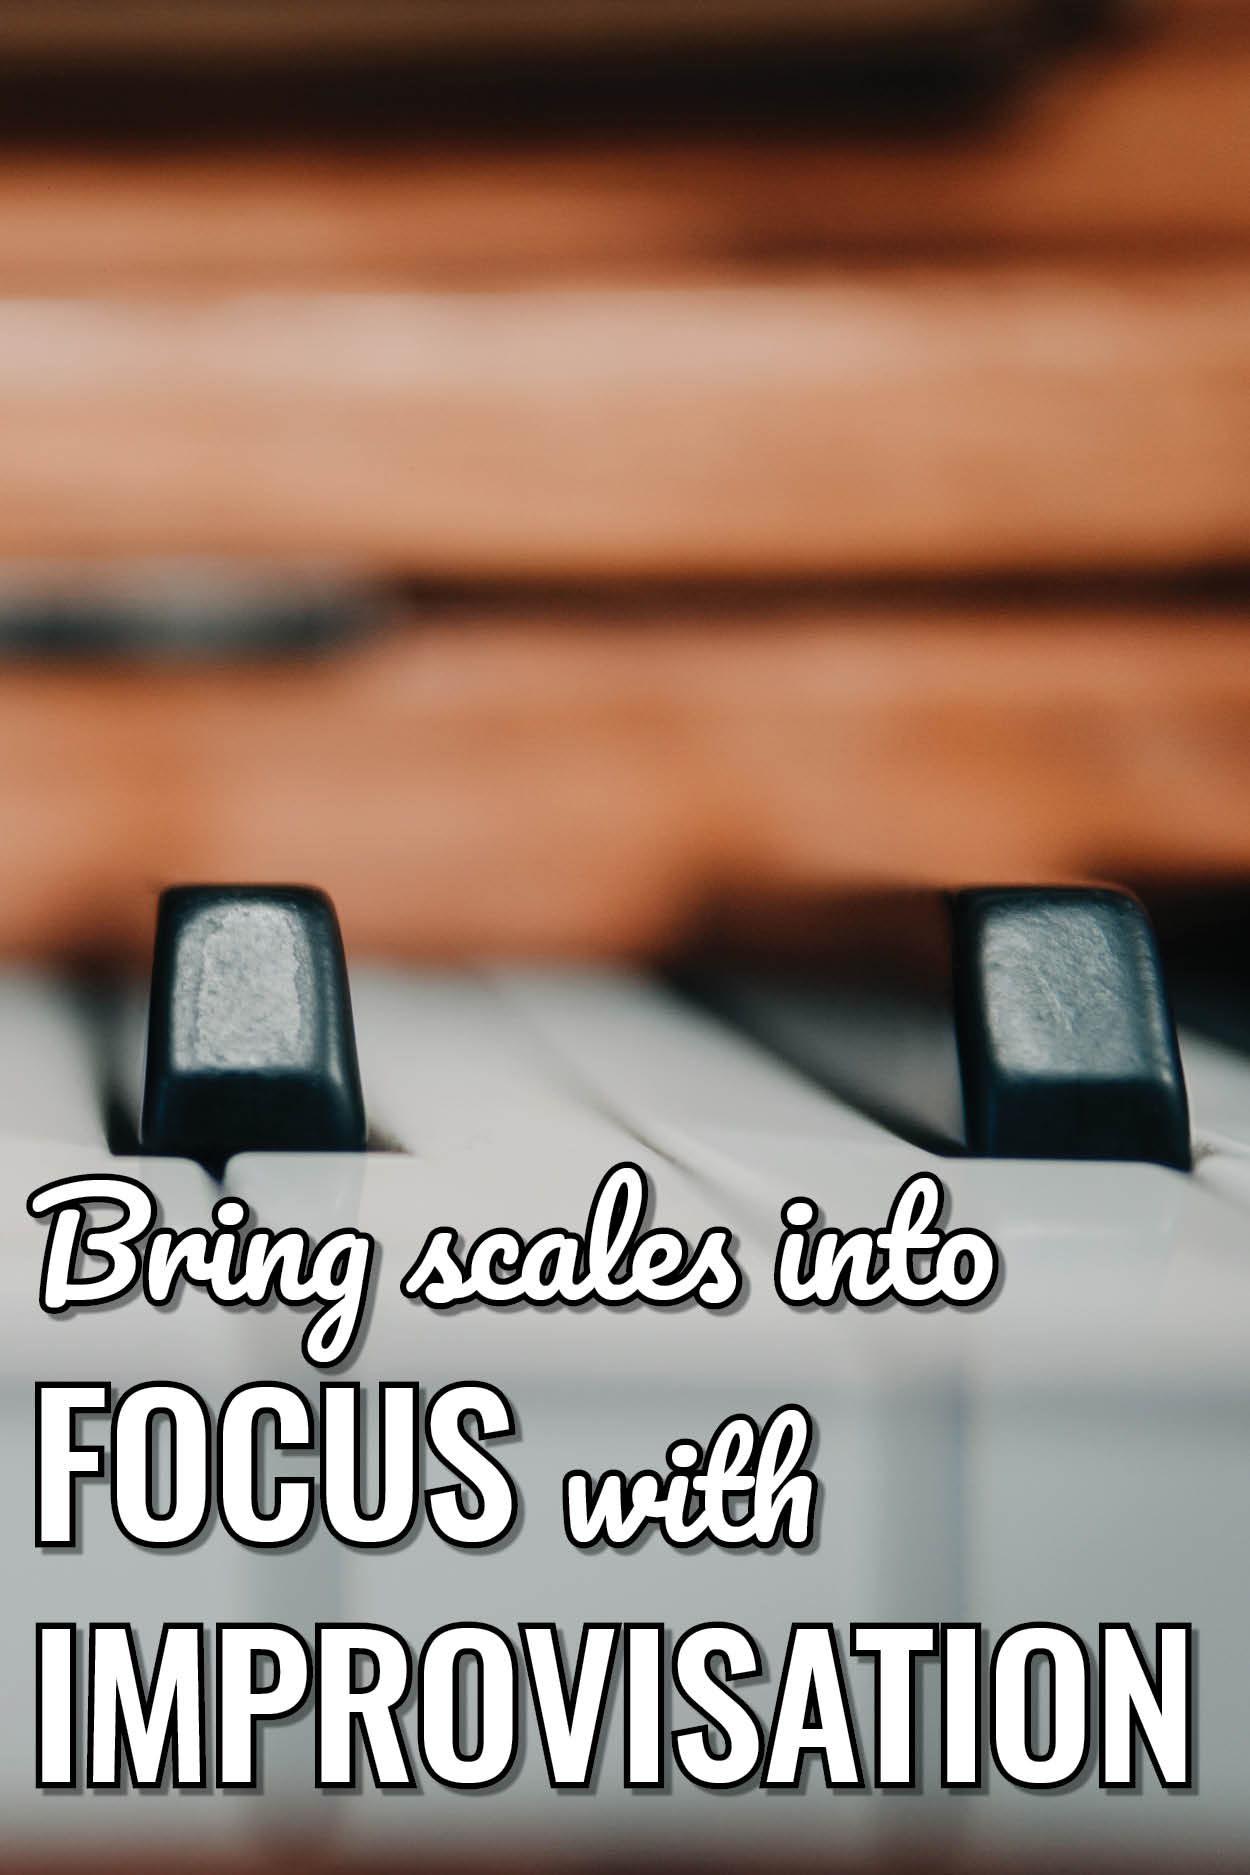 How to get started with circle of fifths improvisation and make scales exciting in your studio.